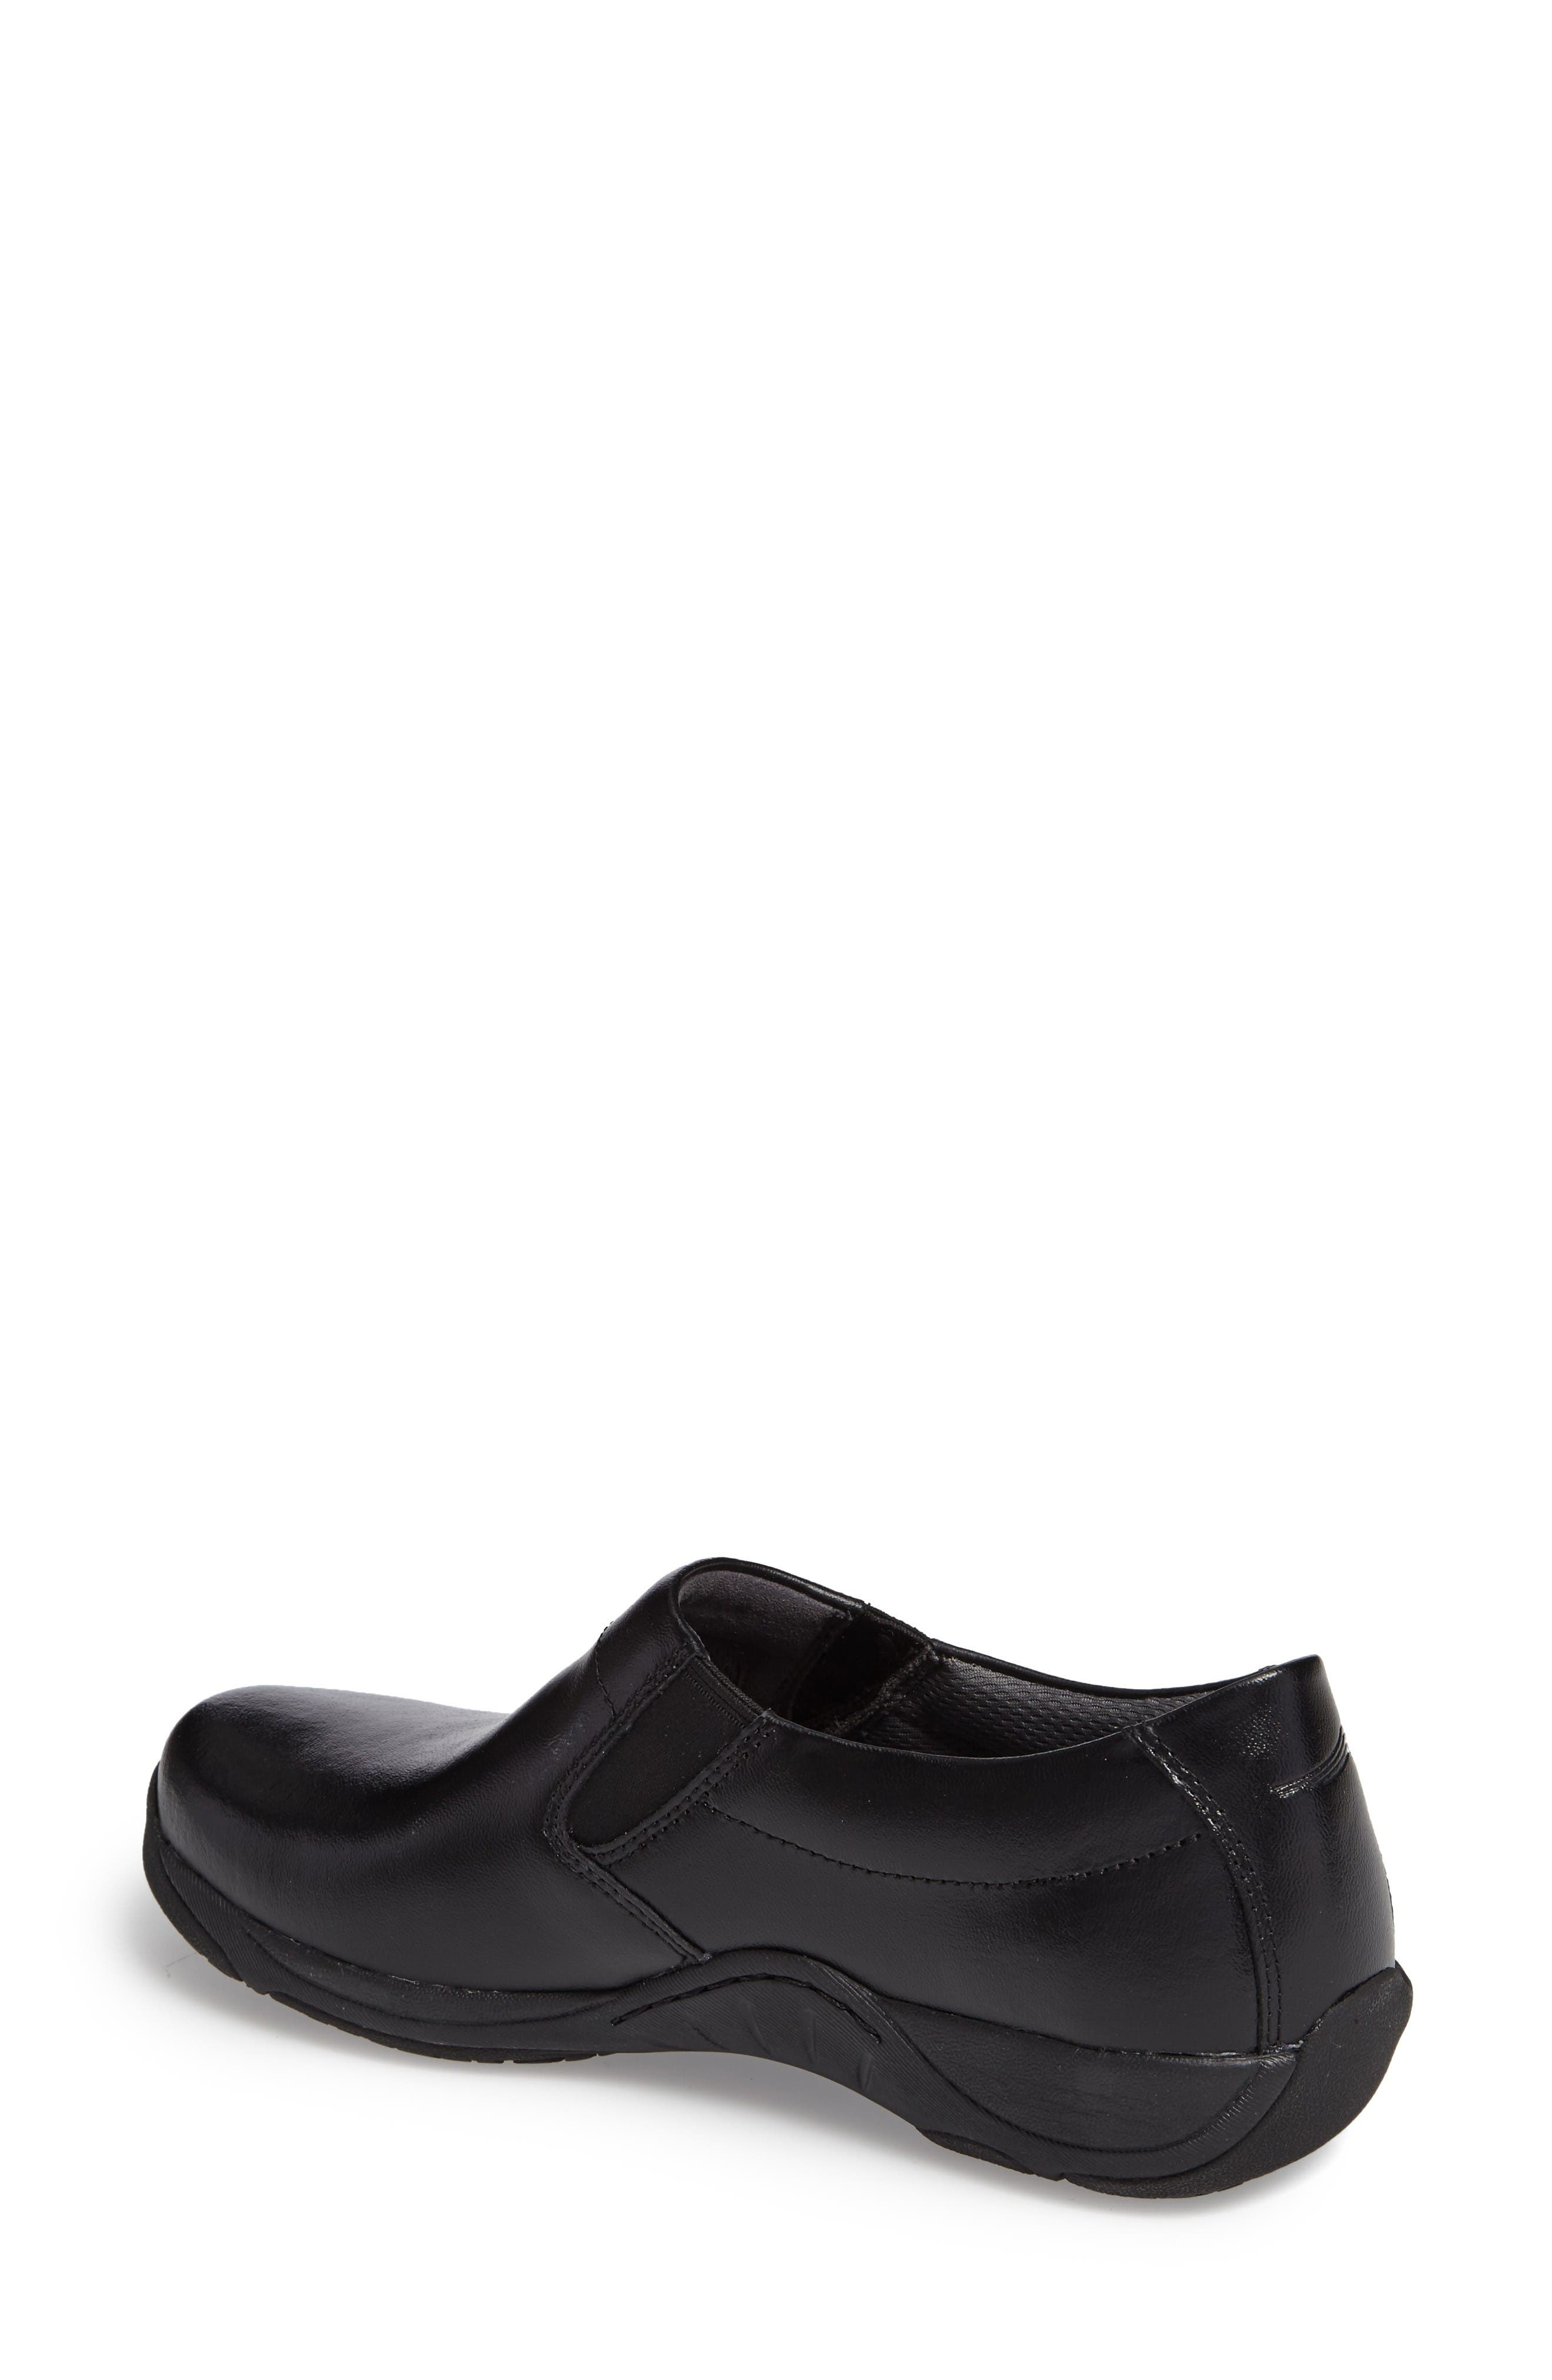 Alternate Image 2  - Dansko Ellie Slip-On Sneaker (Women)